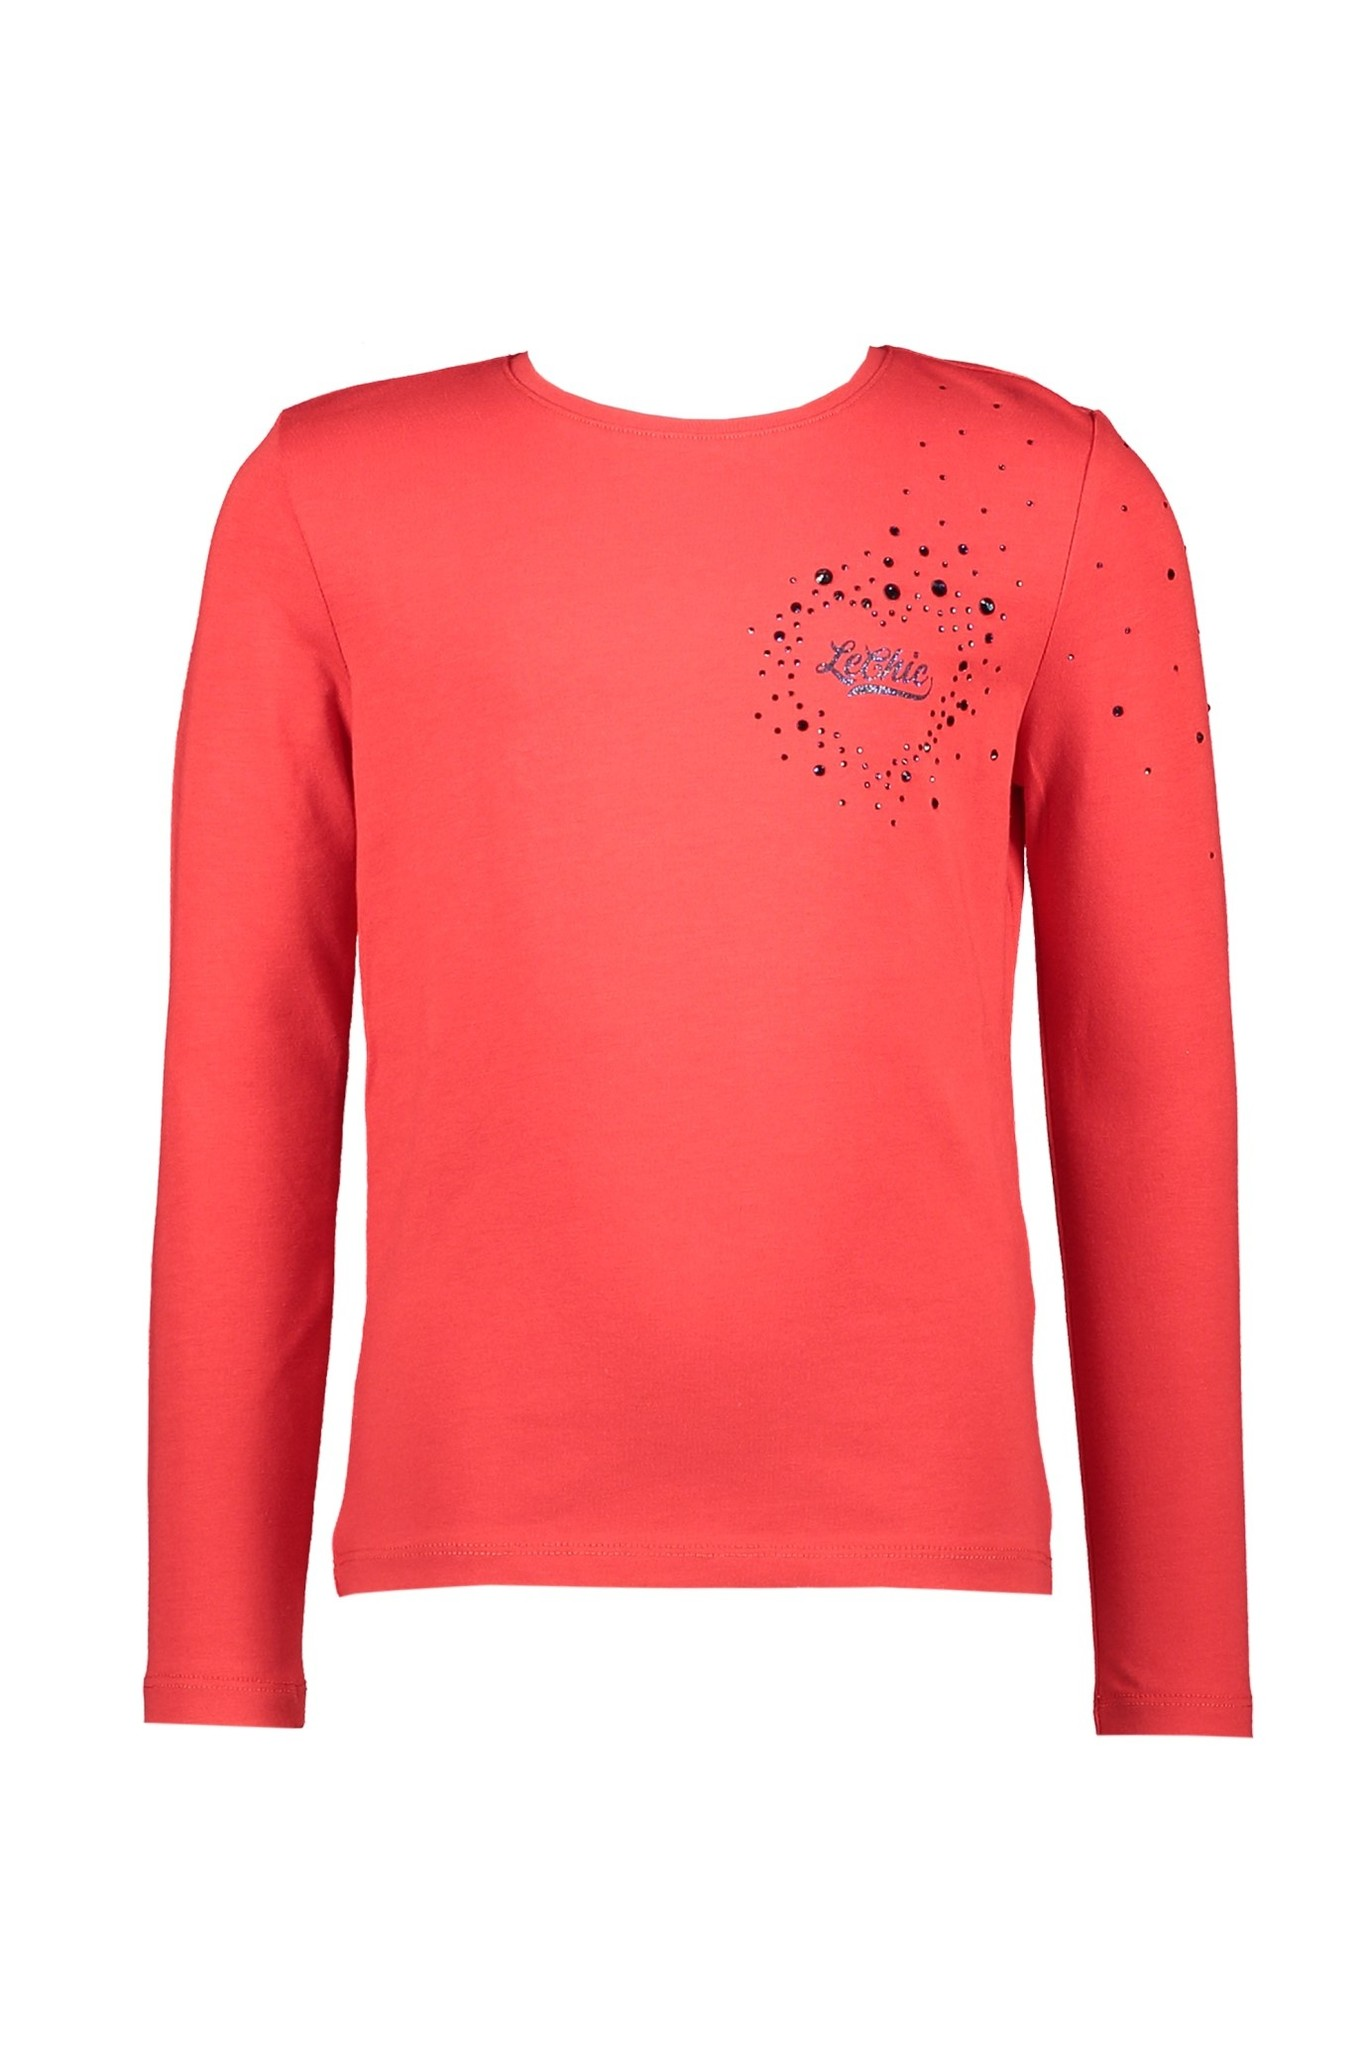 le chic Le Chic Girls Diamonte Top - 5403 AW21